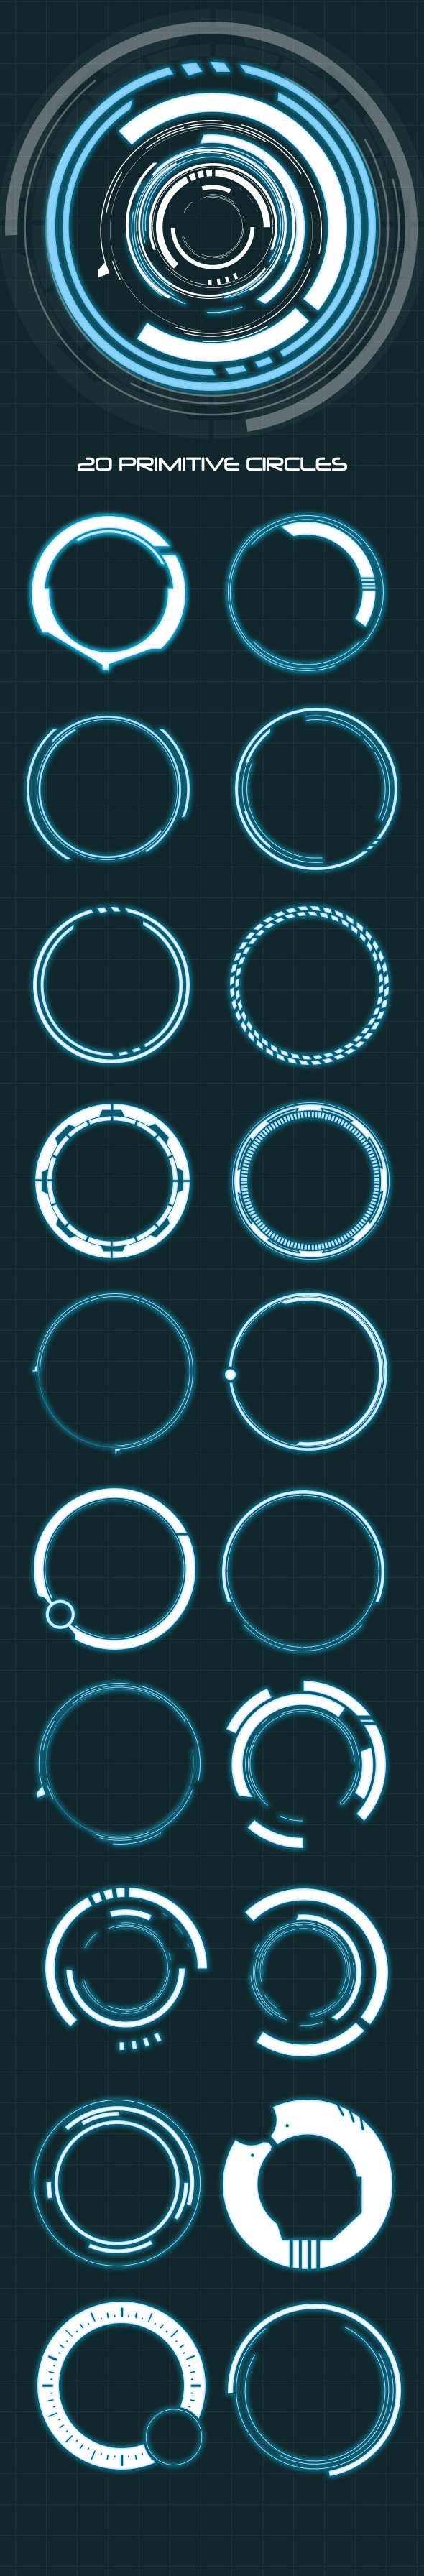 Hi-Tech HUD Circles (20 Elements - Custom Shapes) - Shapes Photoshop